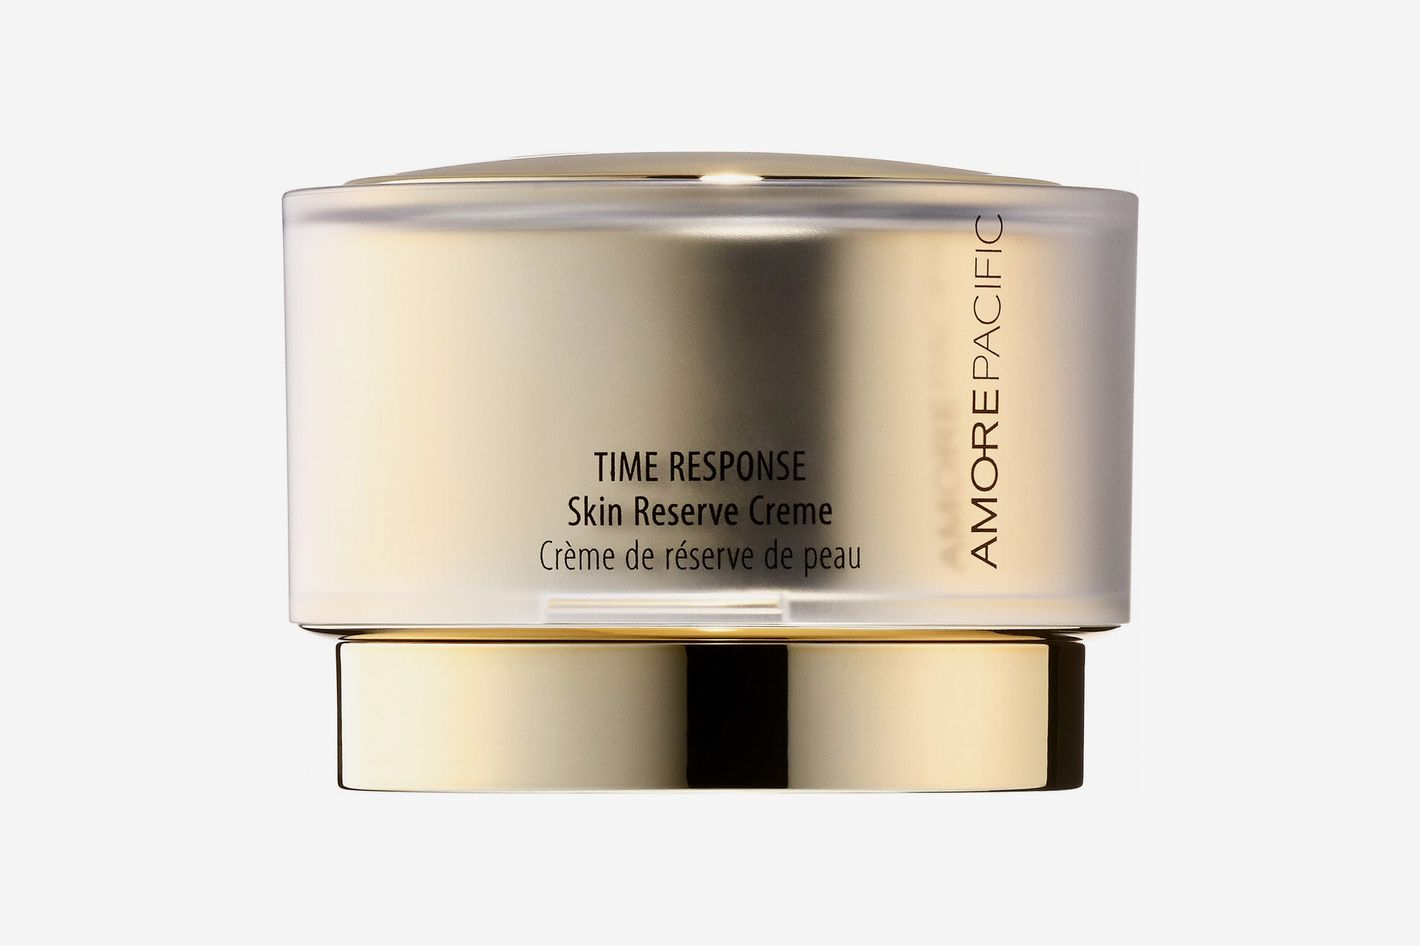 Amore Pacific's Time Response Skin Reserve Intensive Cream